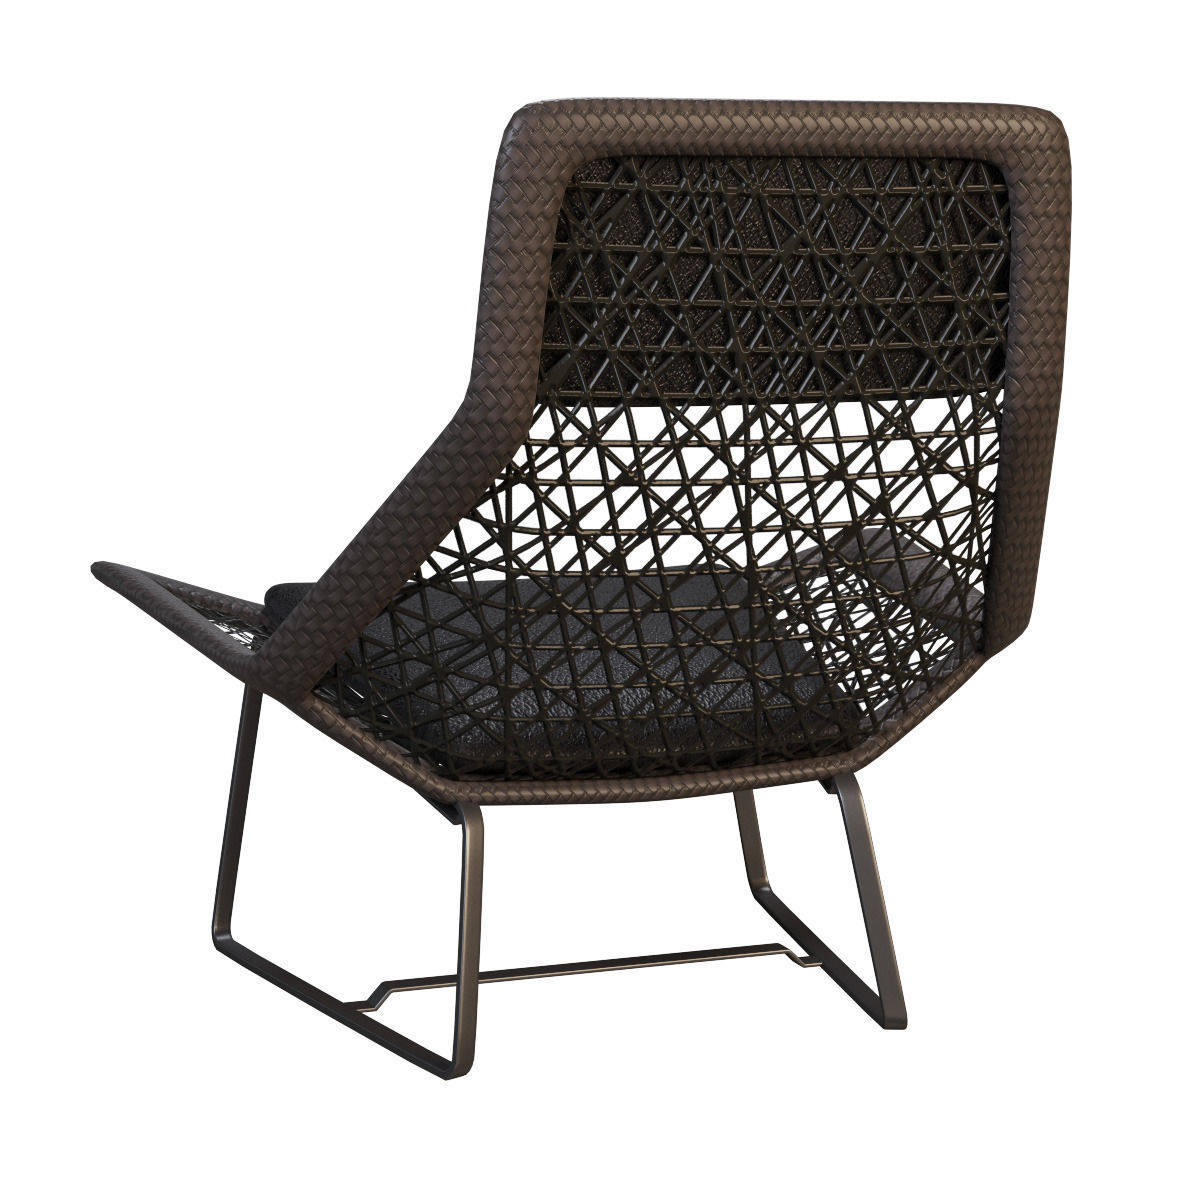 Outdoor wicker chair maia of kettal 3d model max for Kettal maia chair